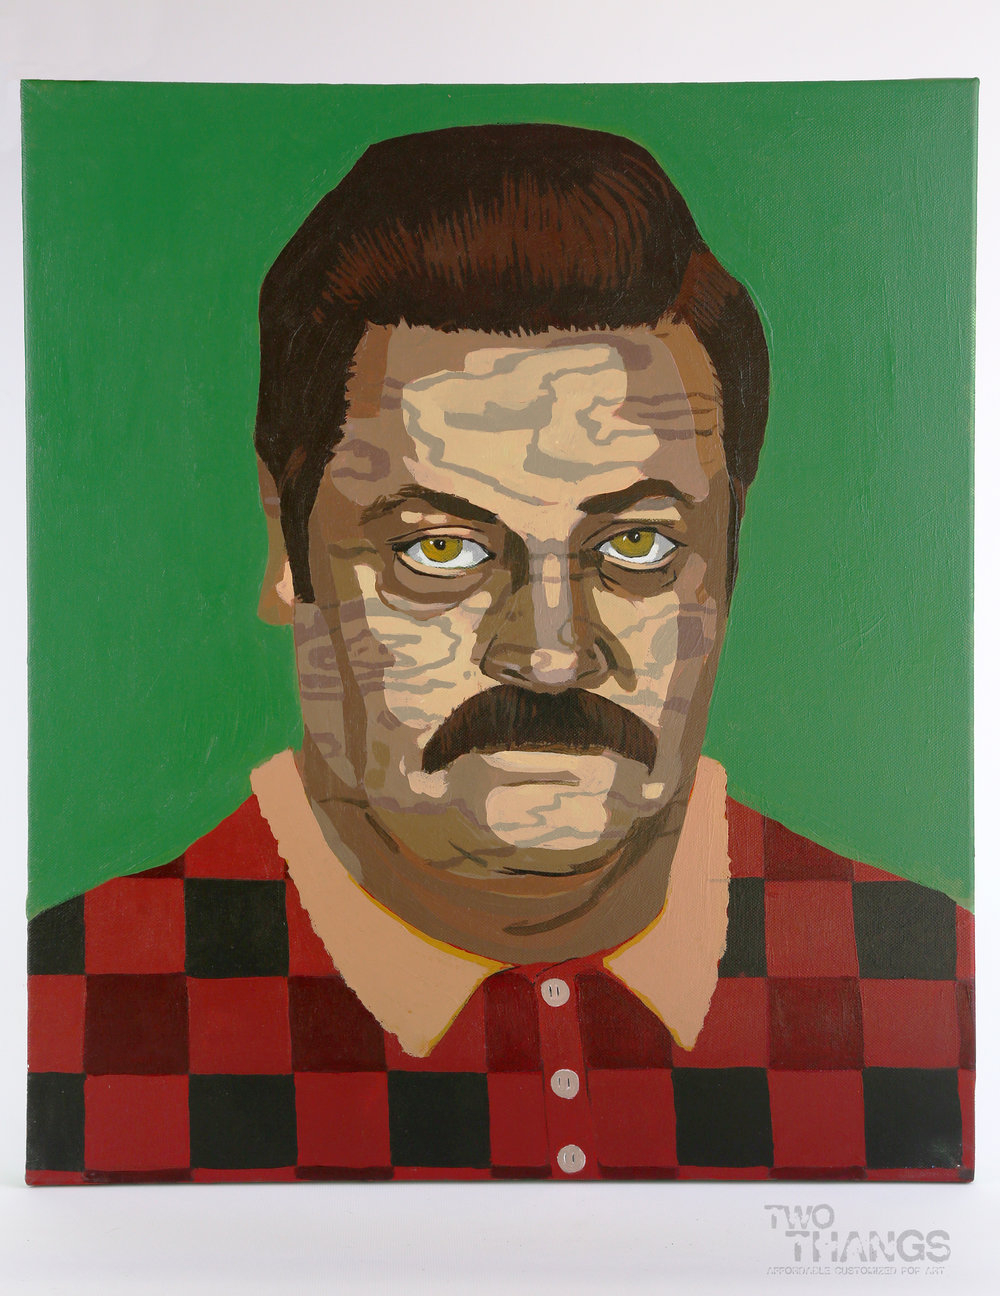 Ron Swanson / Wood Grain